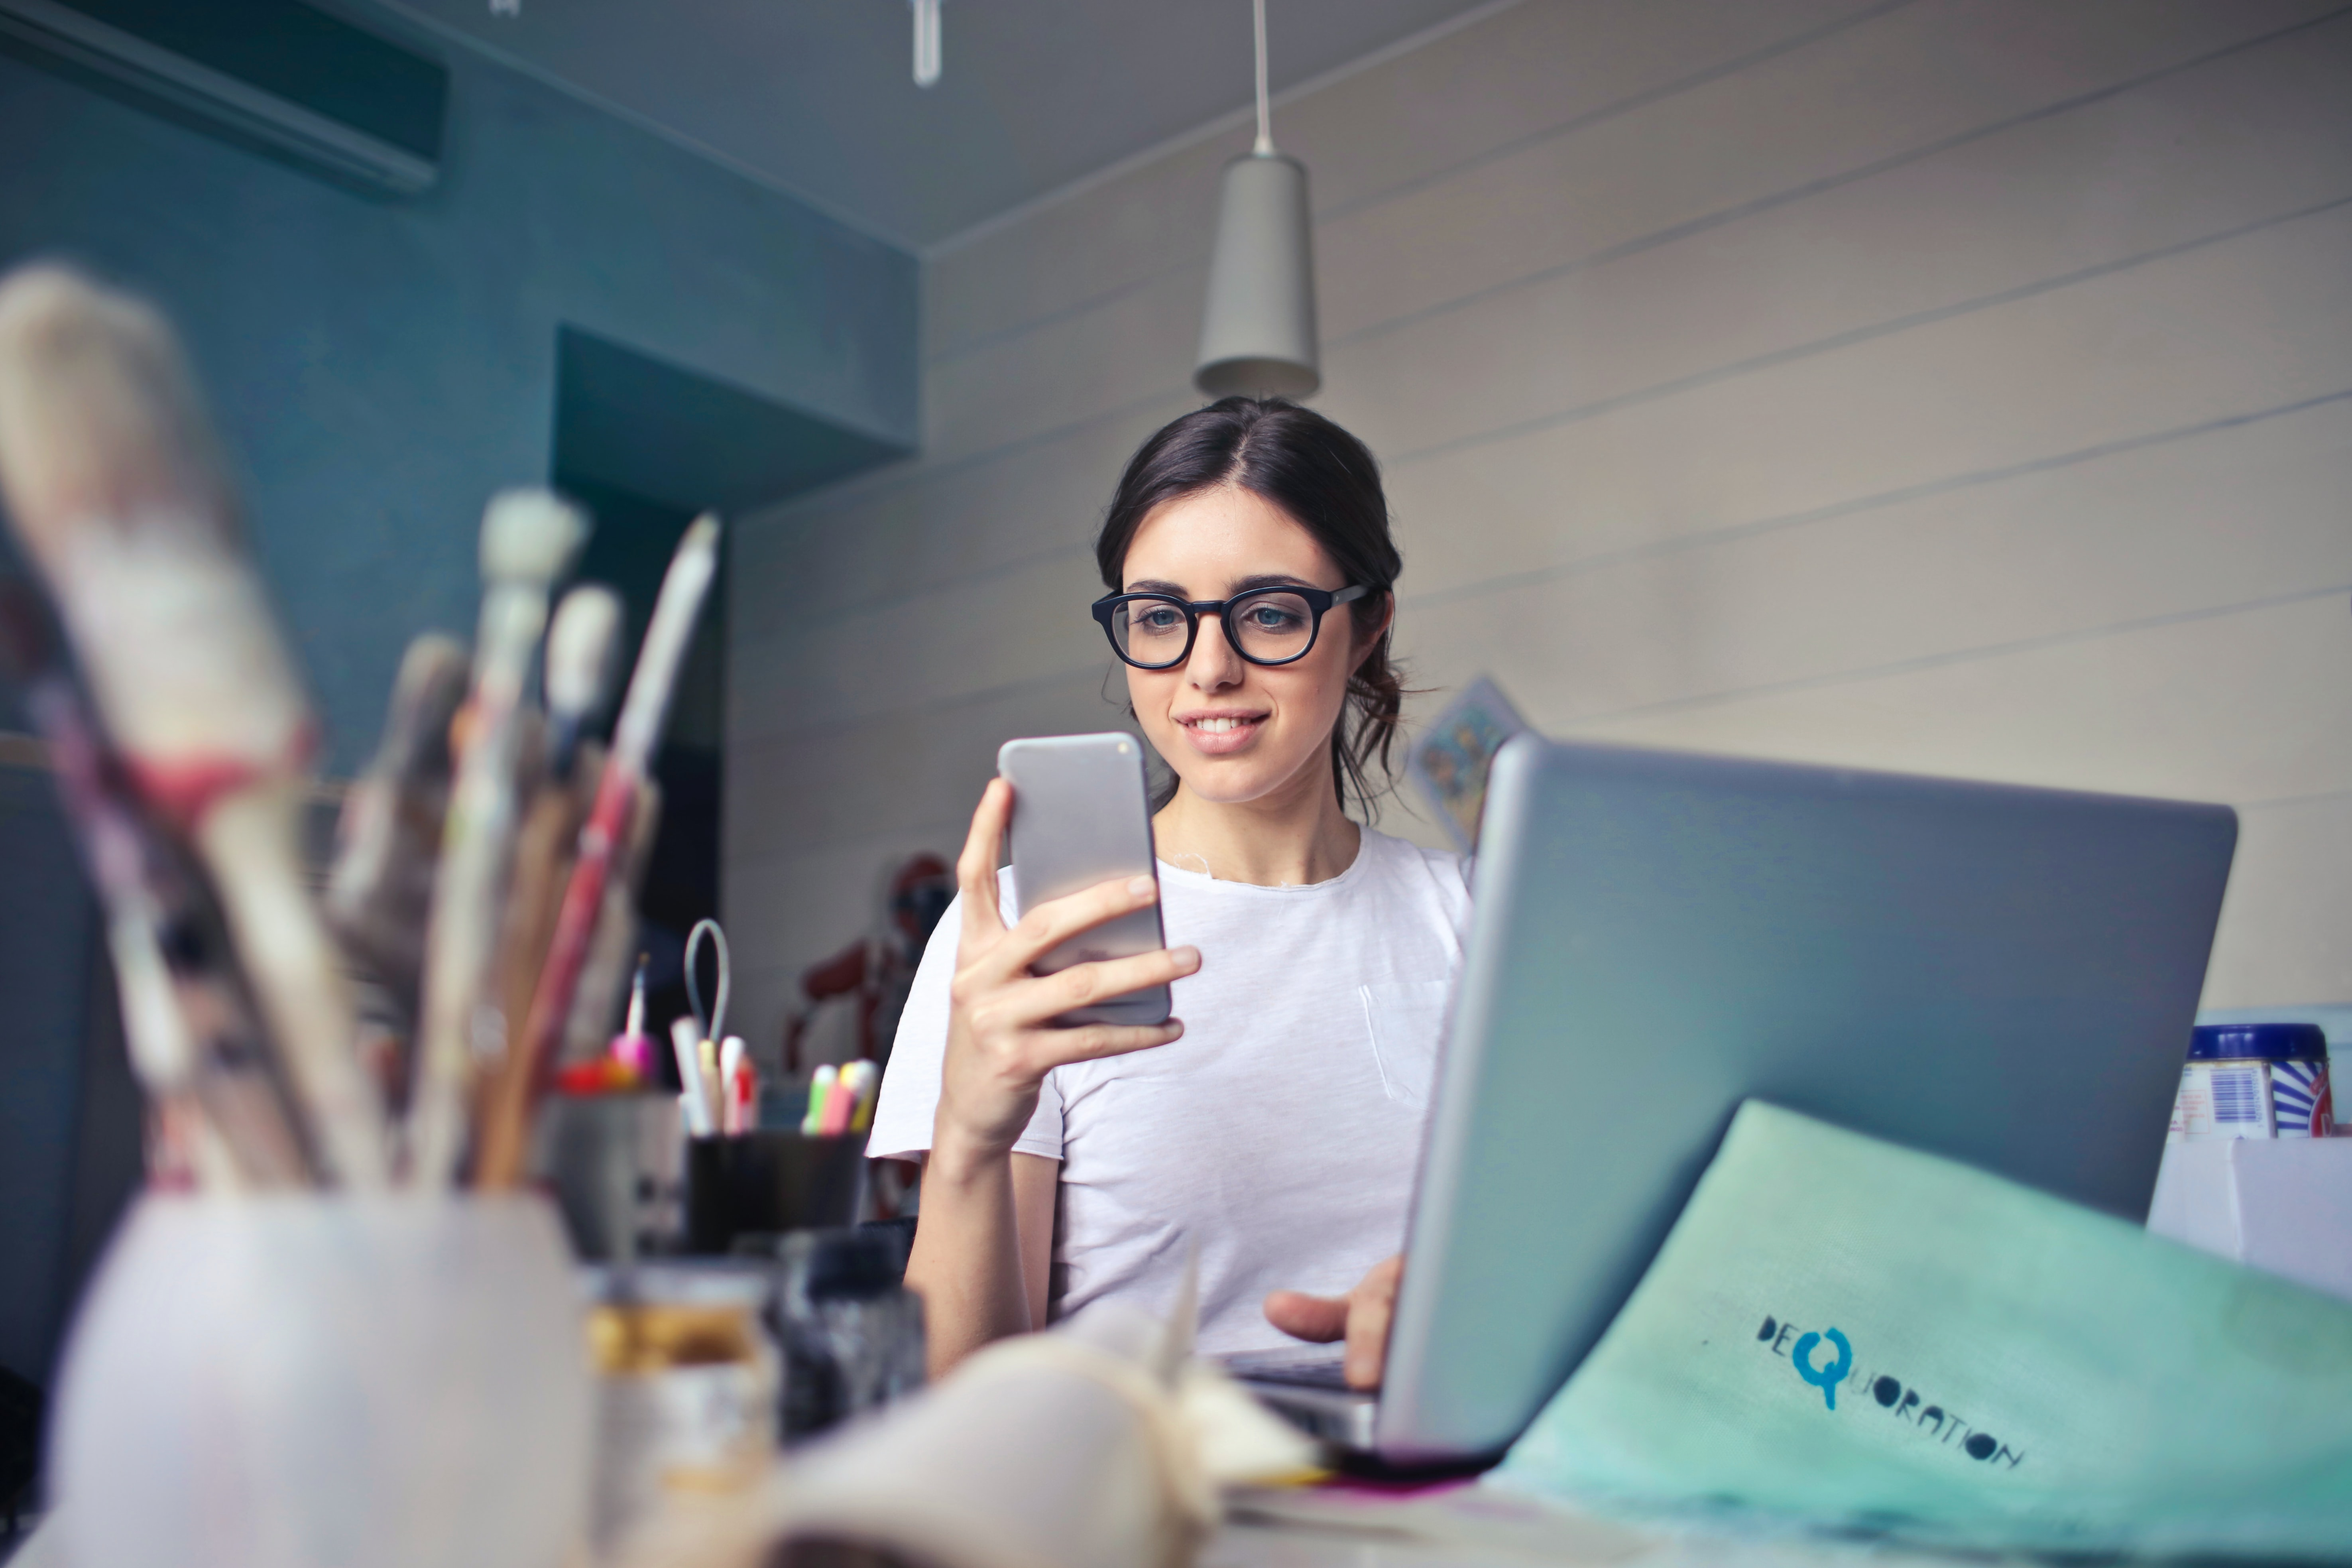 5 job seeking apps to help you find your next career